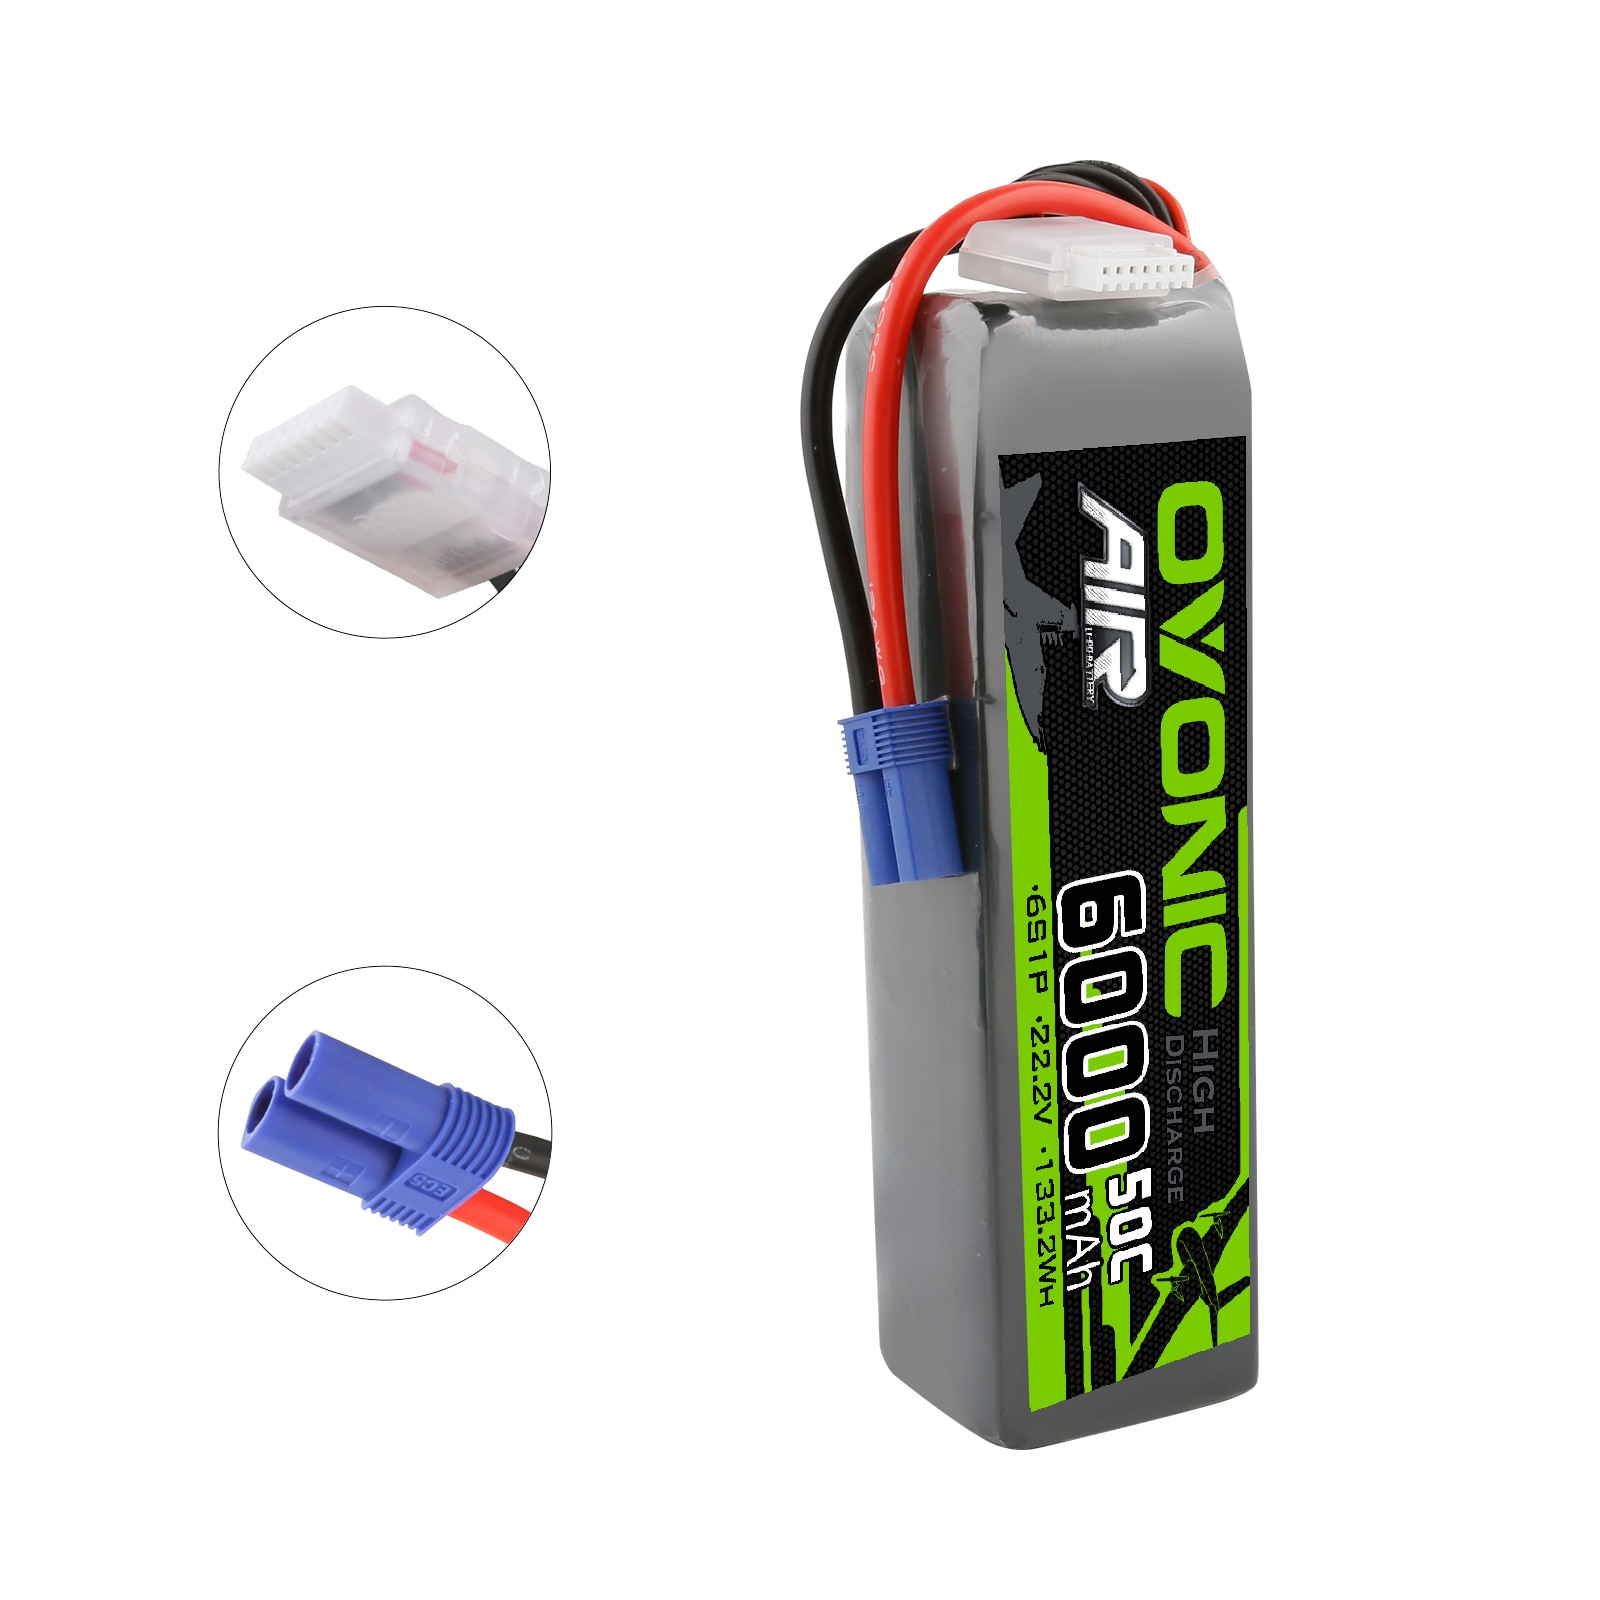 Ovonic Lipo Battery 22.2V 6000mAh 50C EC5 Plug 6S RC Lipo Batteries for RC Car Boat Truck Drone Racing FPV Helicopter enlarge